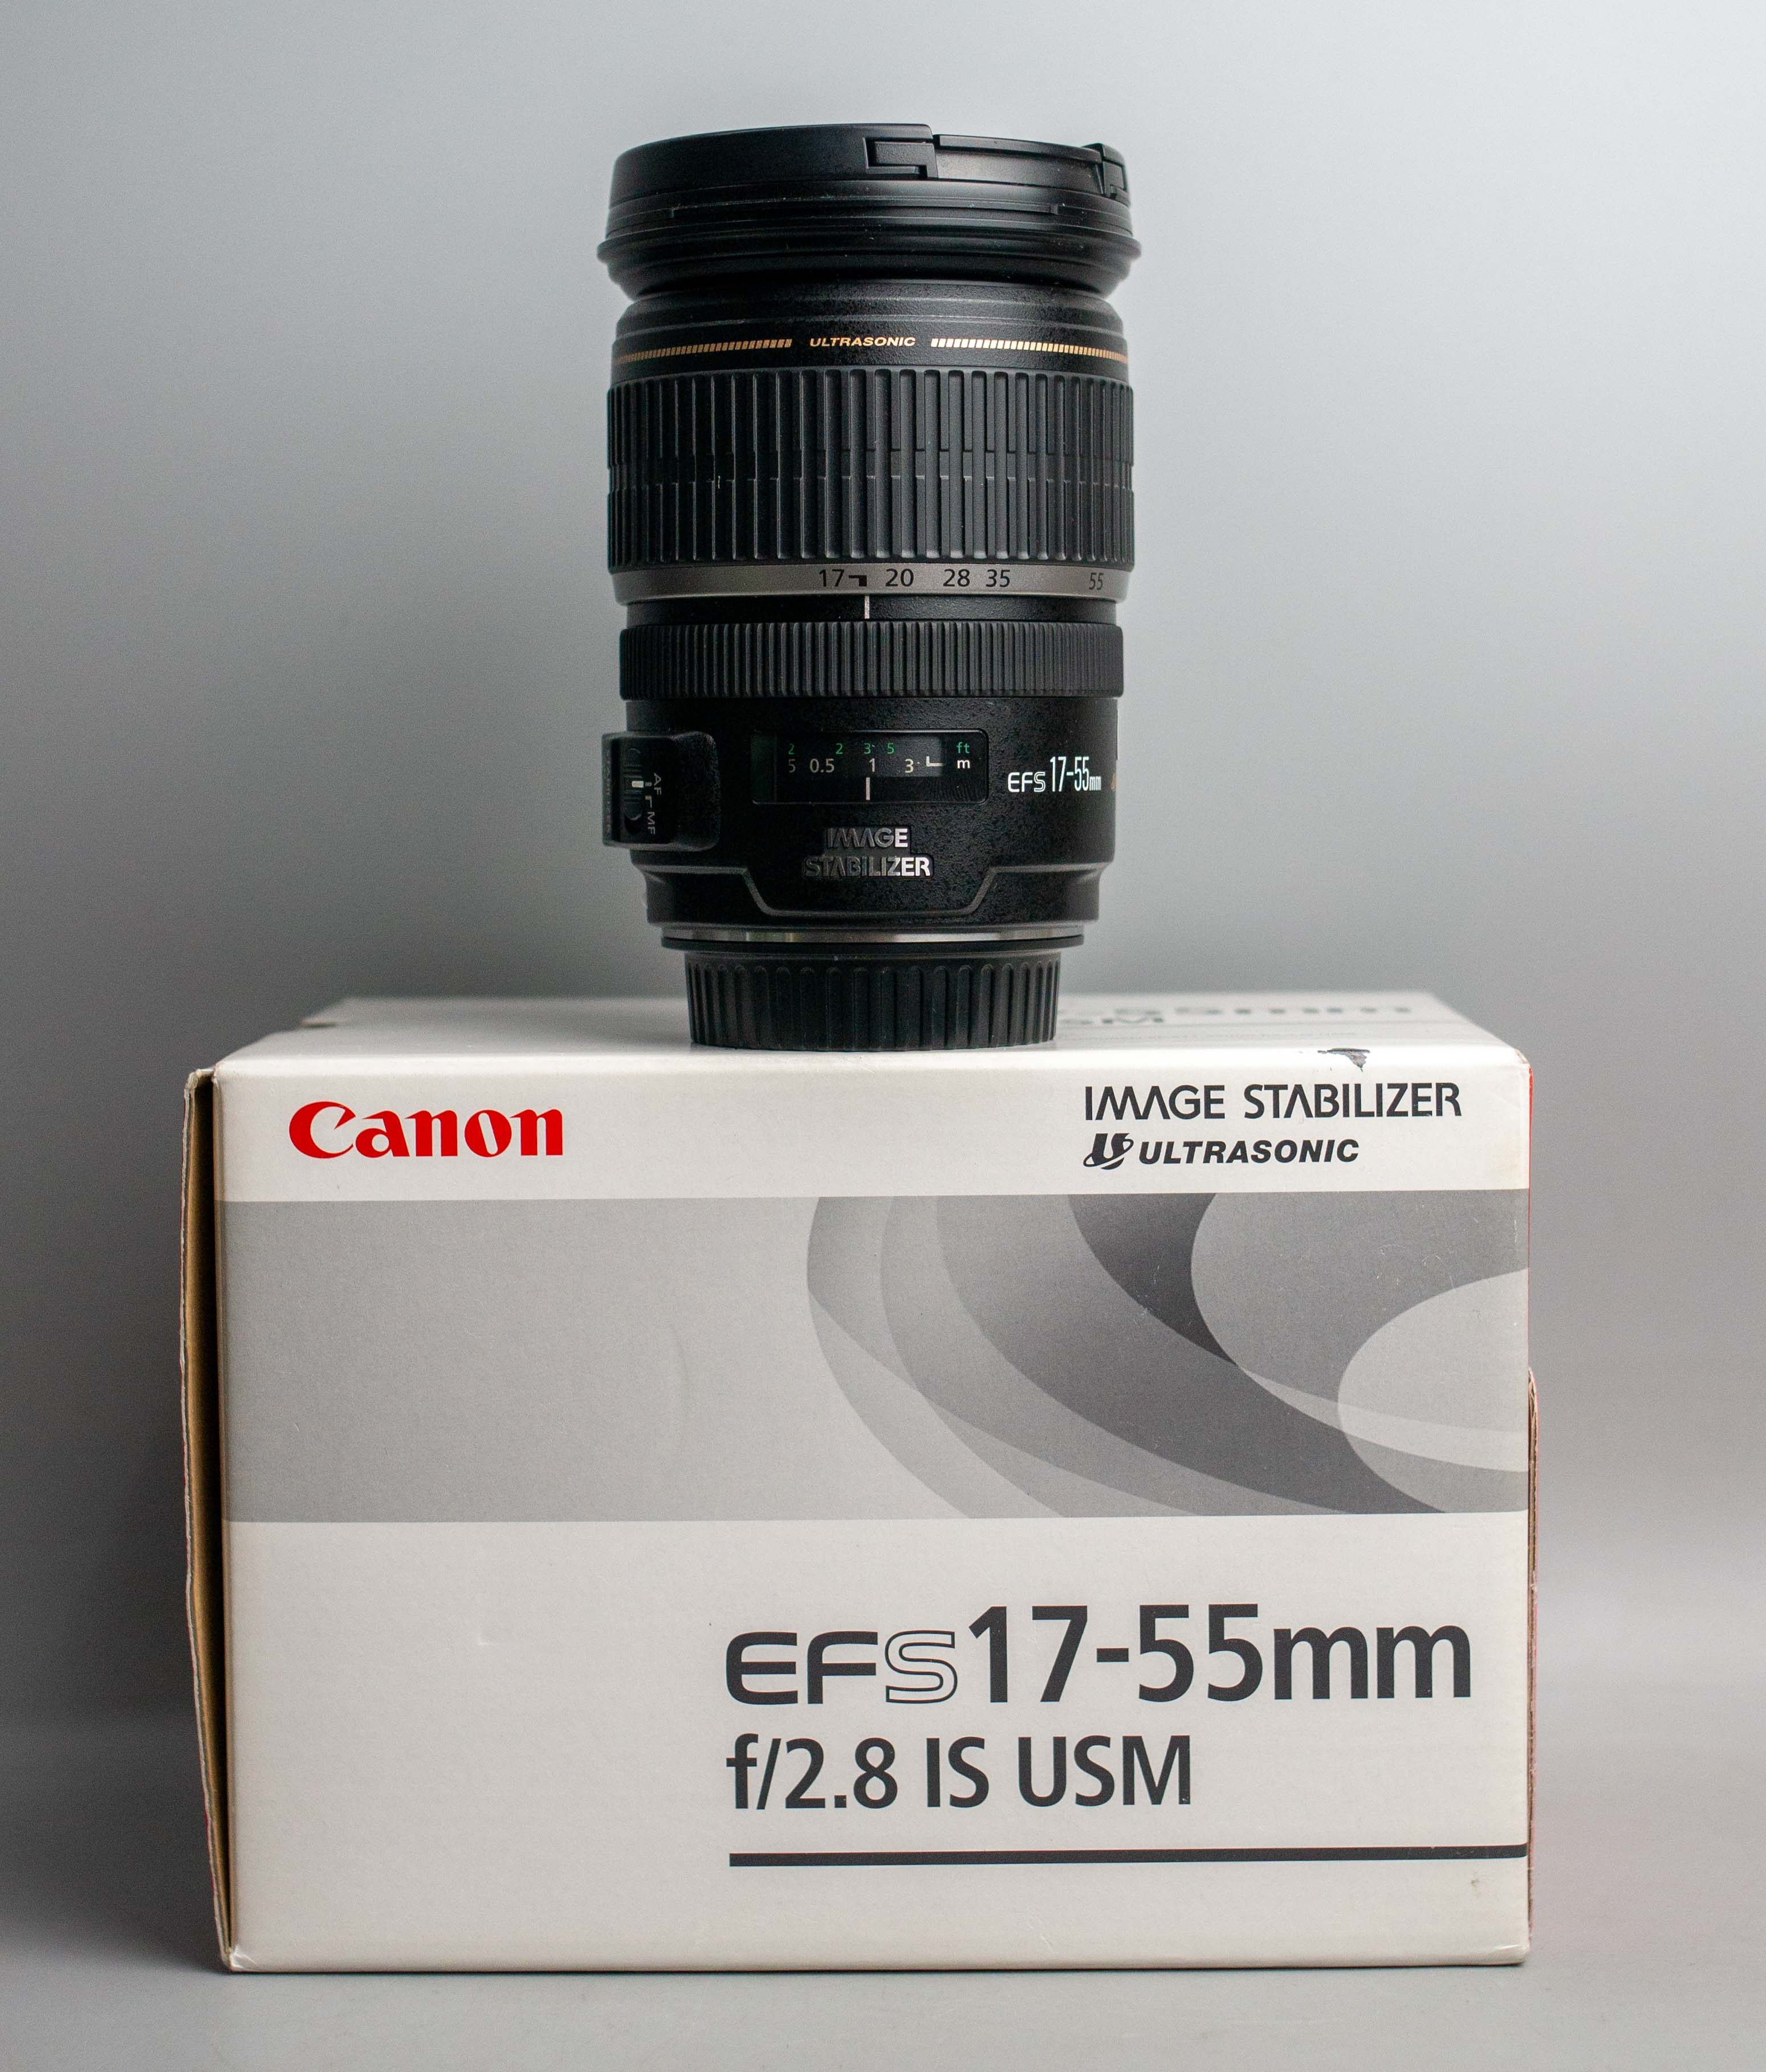 canon-17-55mm-f2-8-af-ef-s-is-usm-117-55-2-8-17751